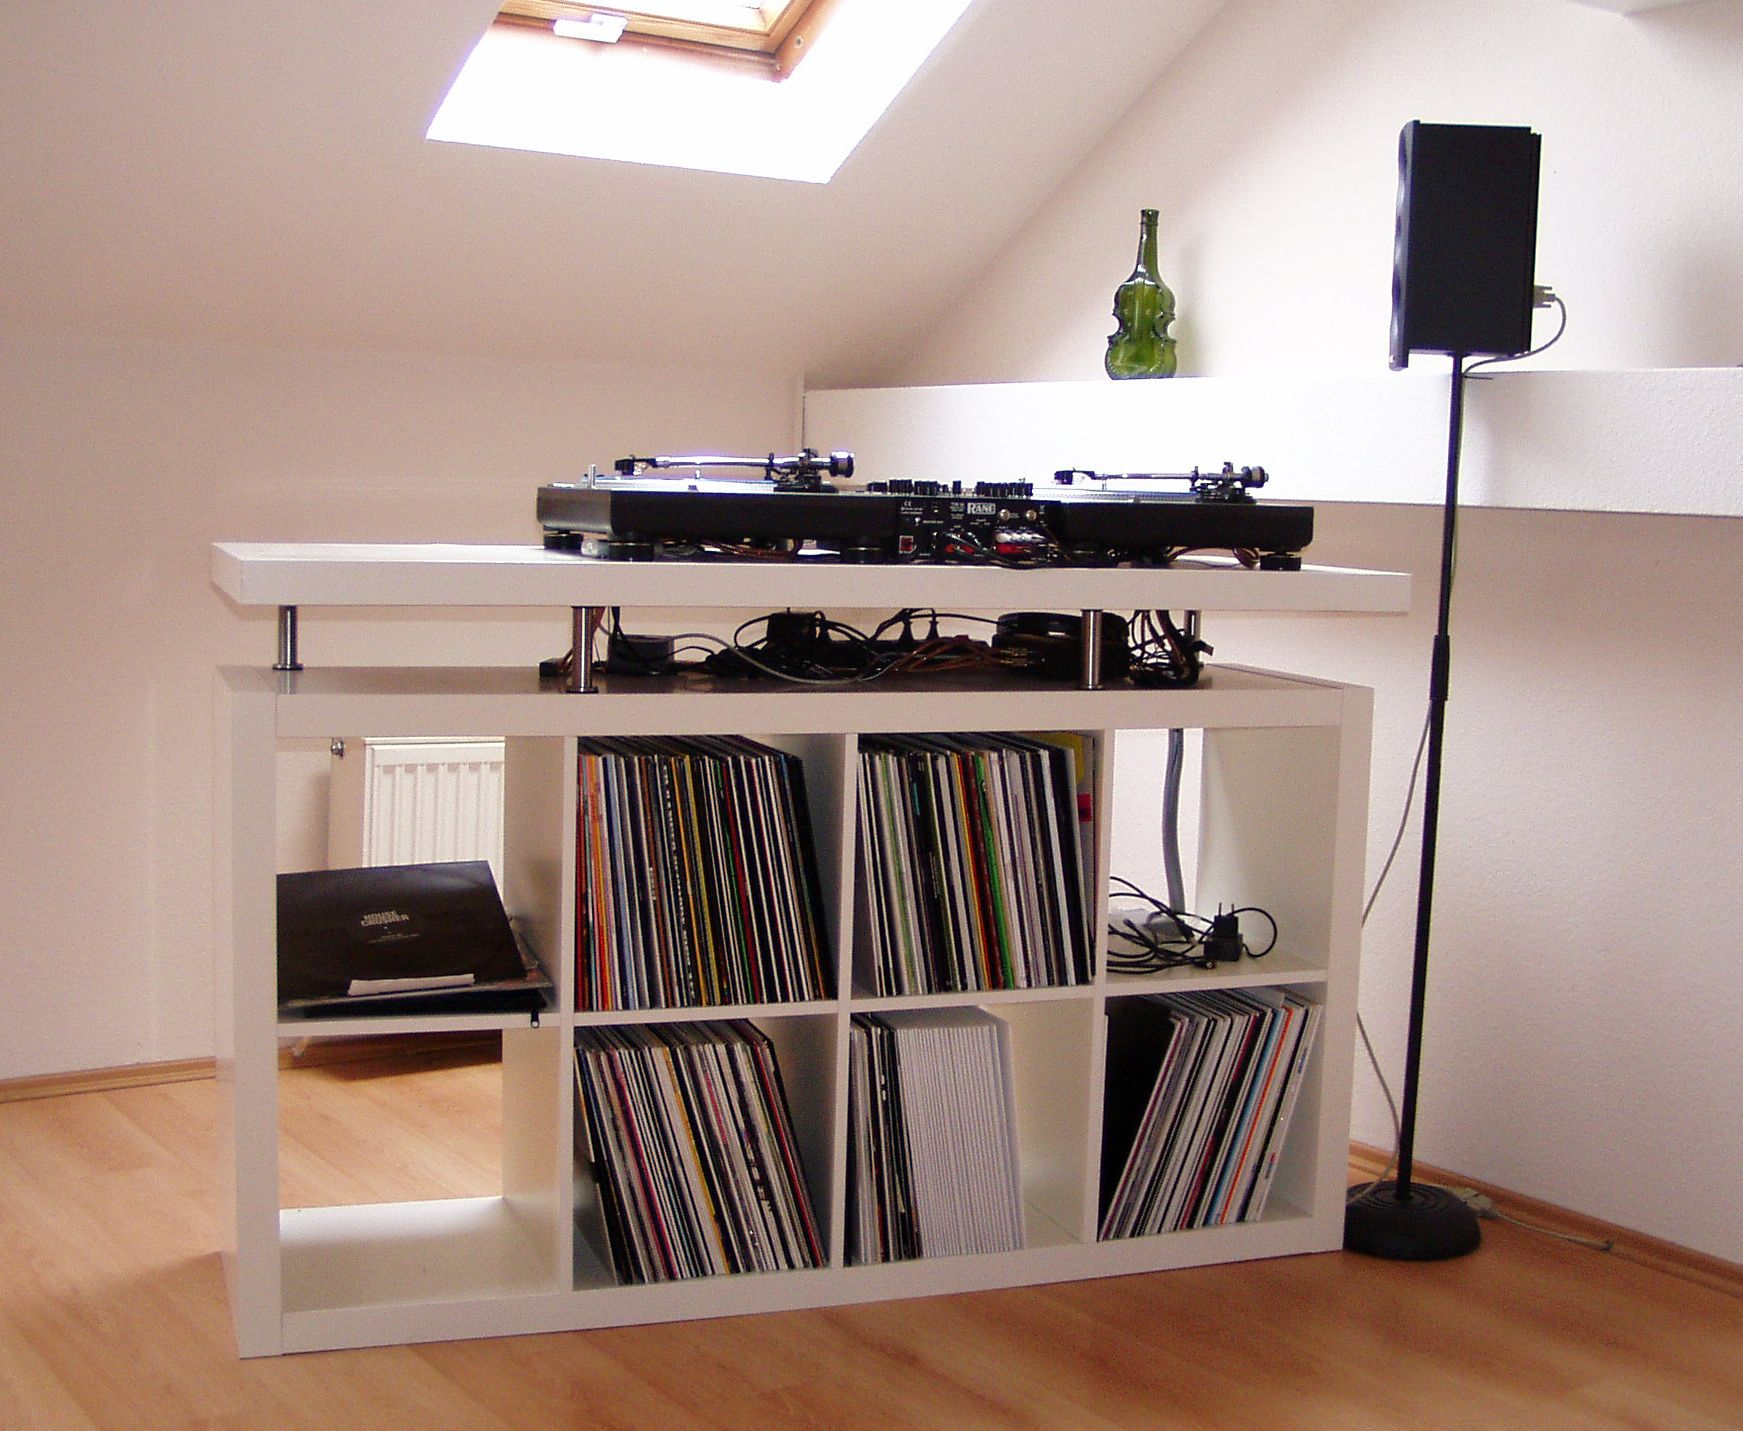 dj turntable mixing desk stand hey dj pinterest dj. Black Bedroom Furniture Sets. Home Design Ideas